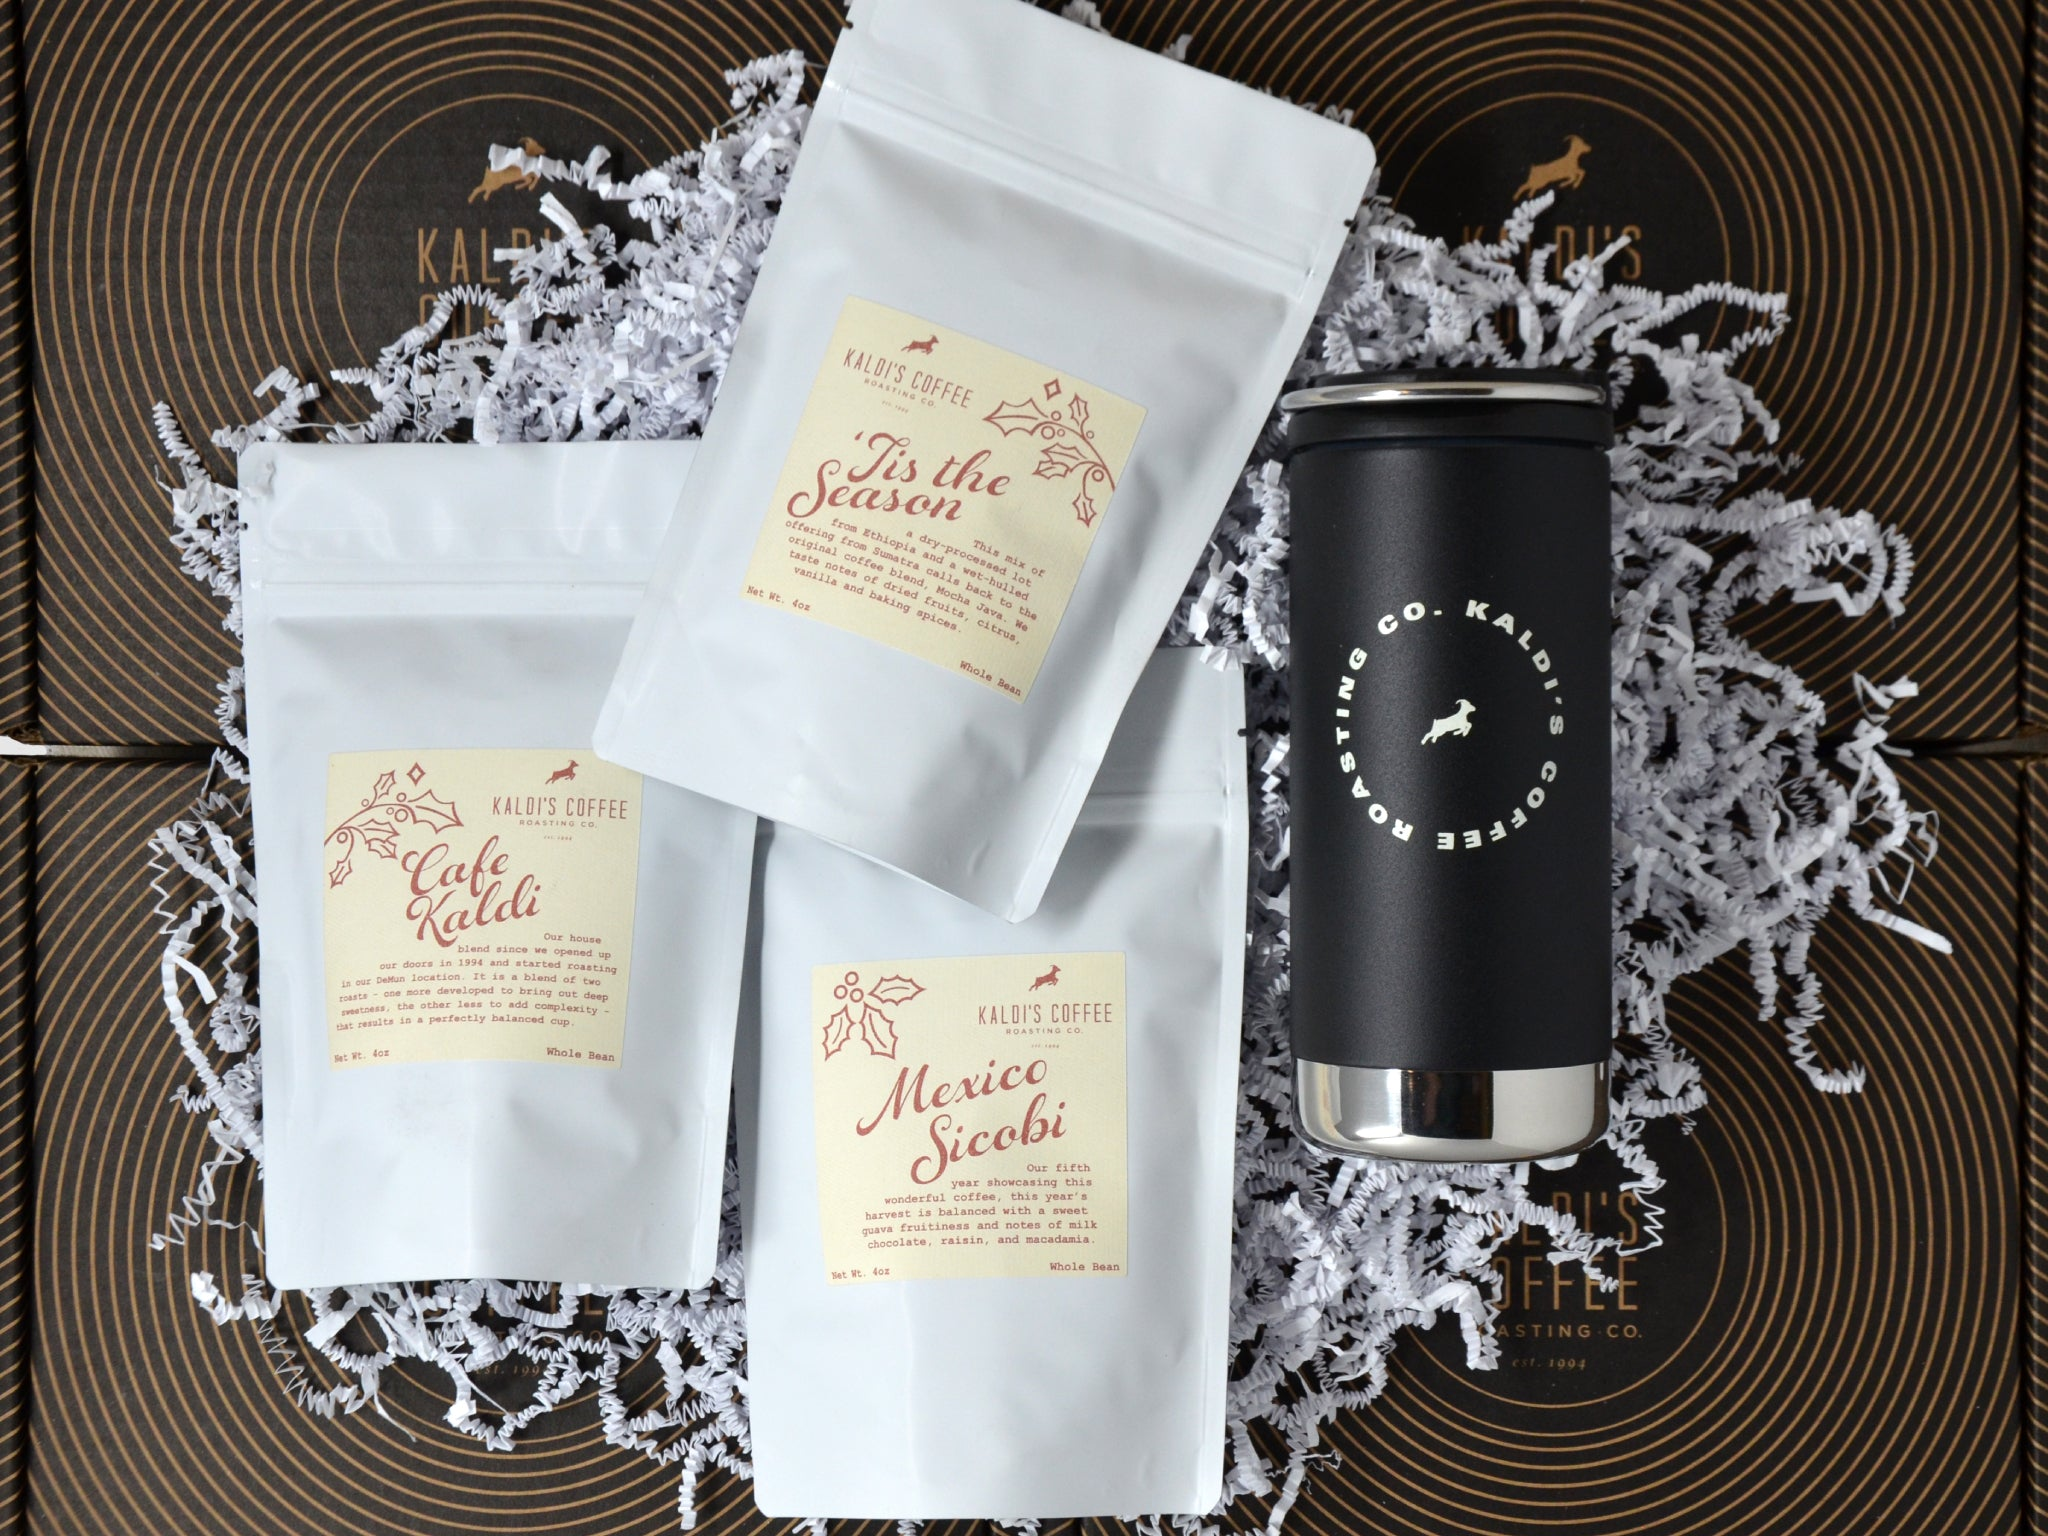 12oz Klean Kanteen and 3 4oz Coffee Gift Pack | Holiday Gift Box, $41.99